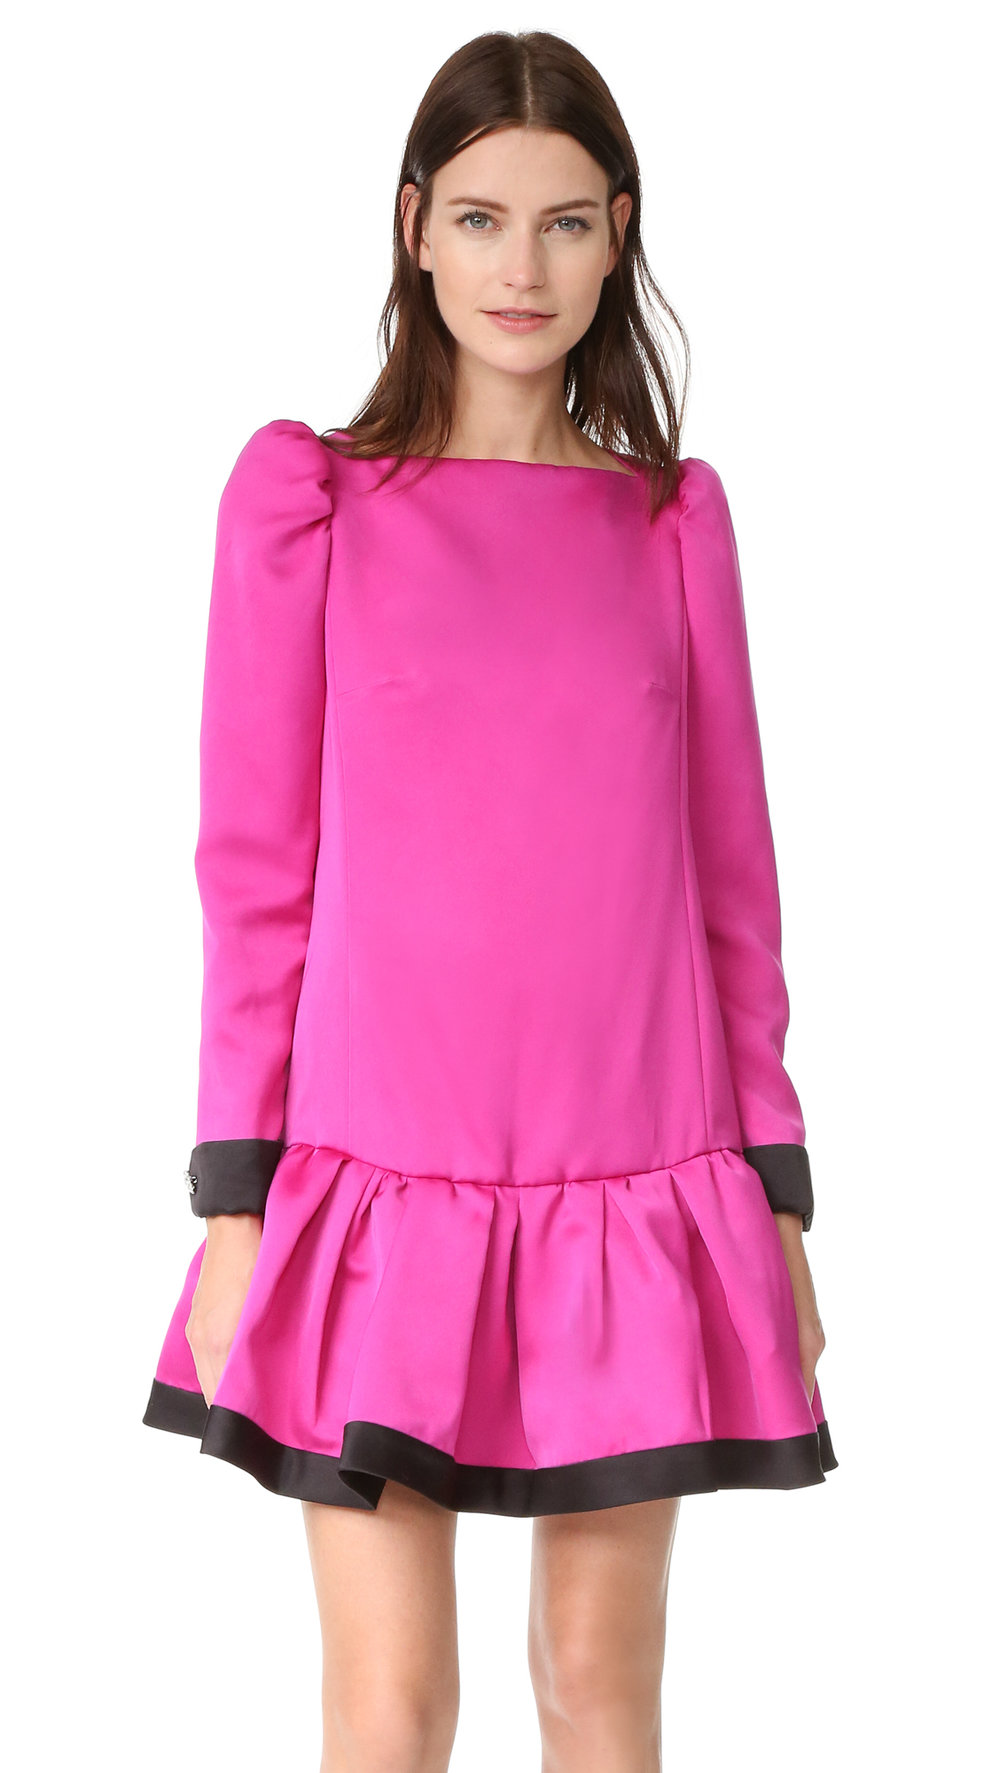 marc jacobs pink dress